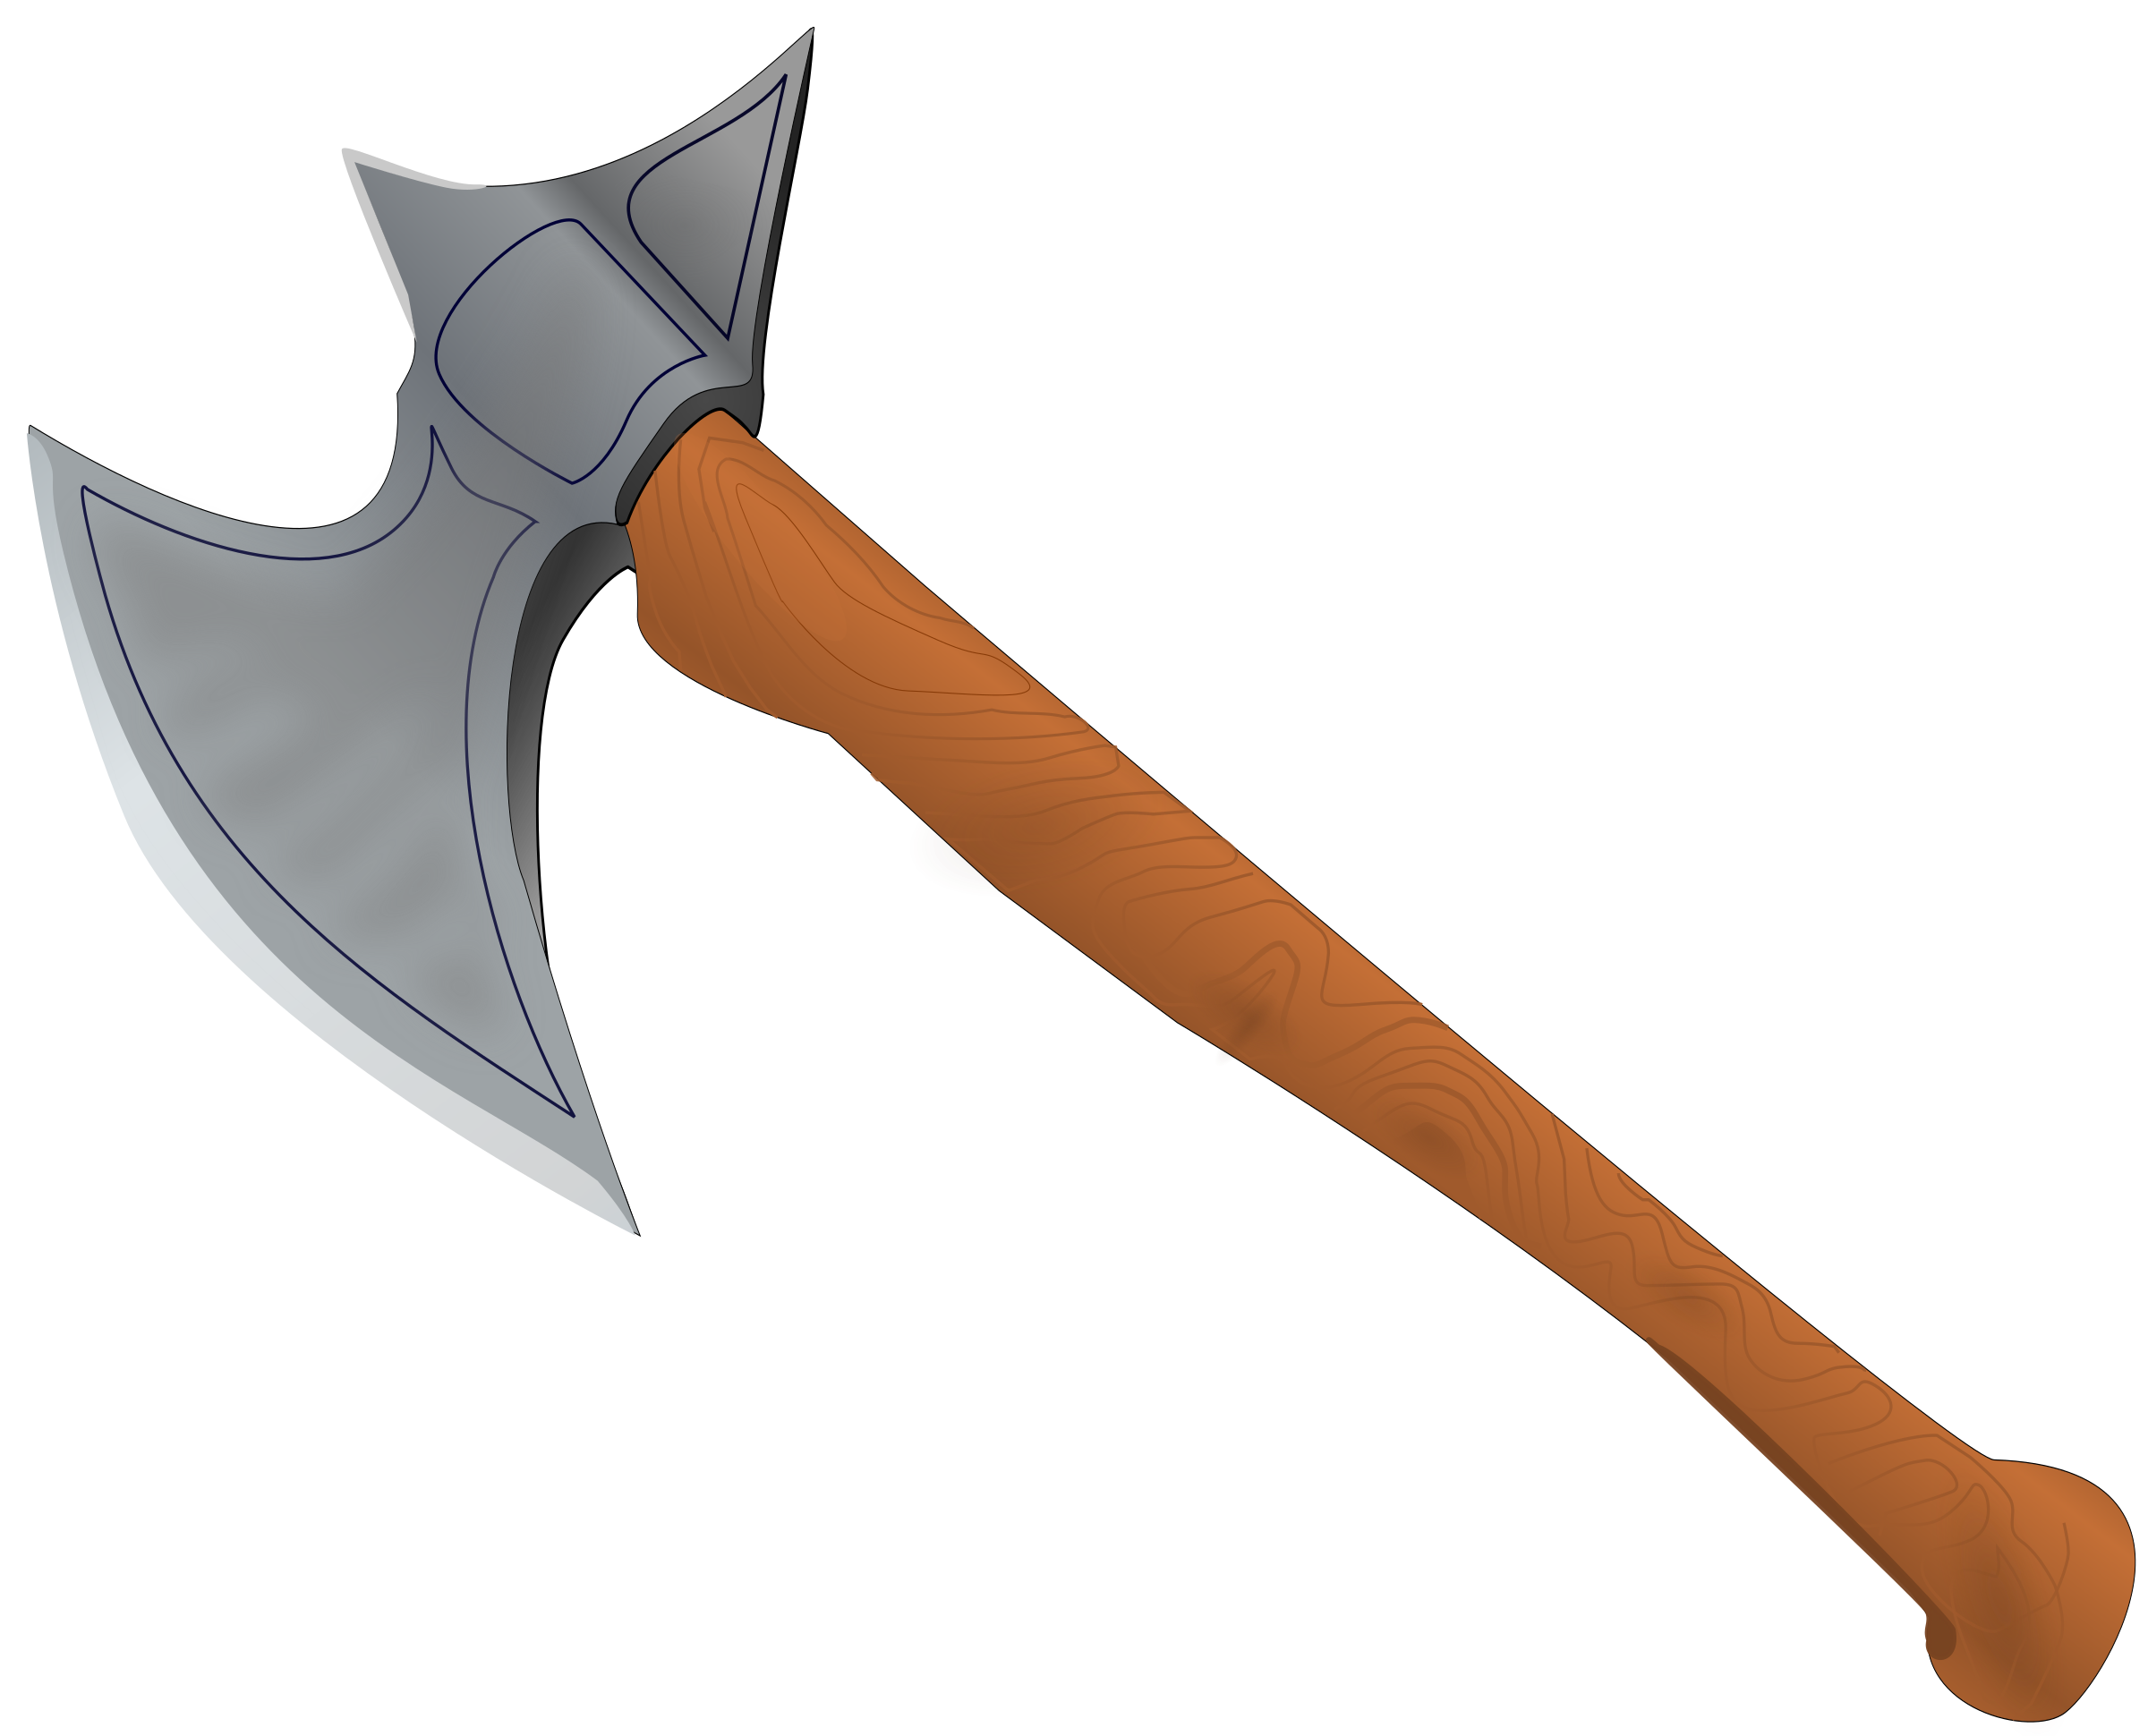 Battle axe medieval by StefanvonHalenbach